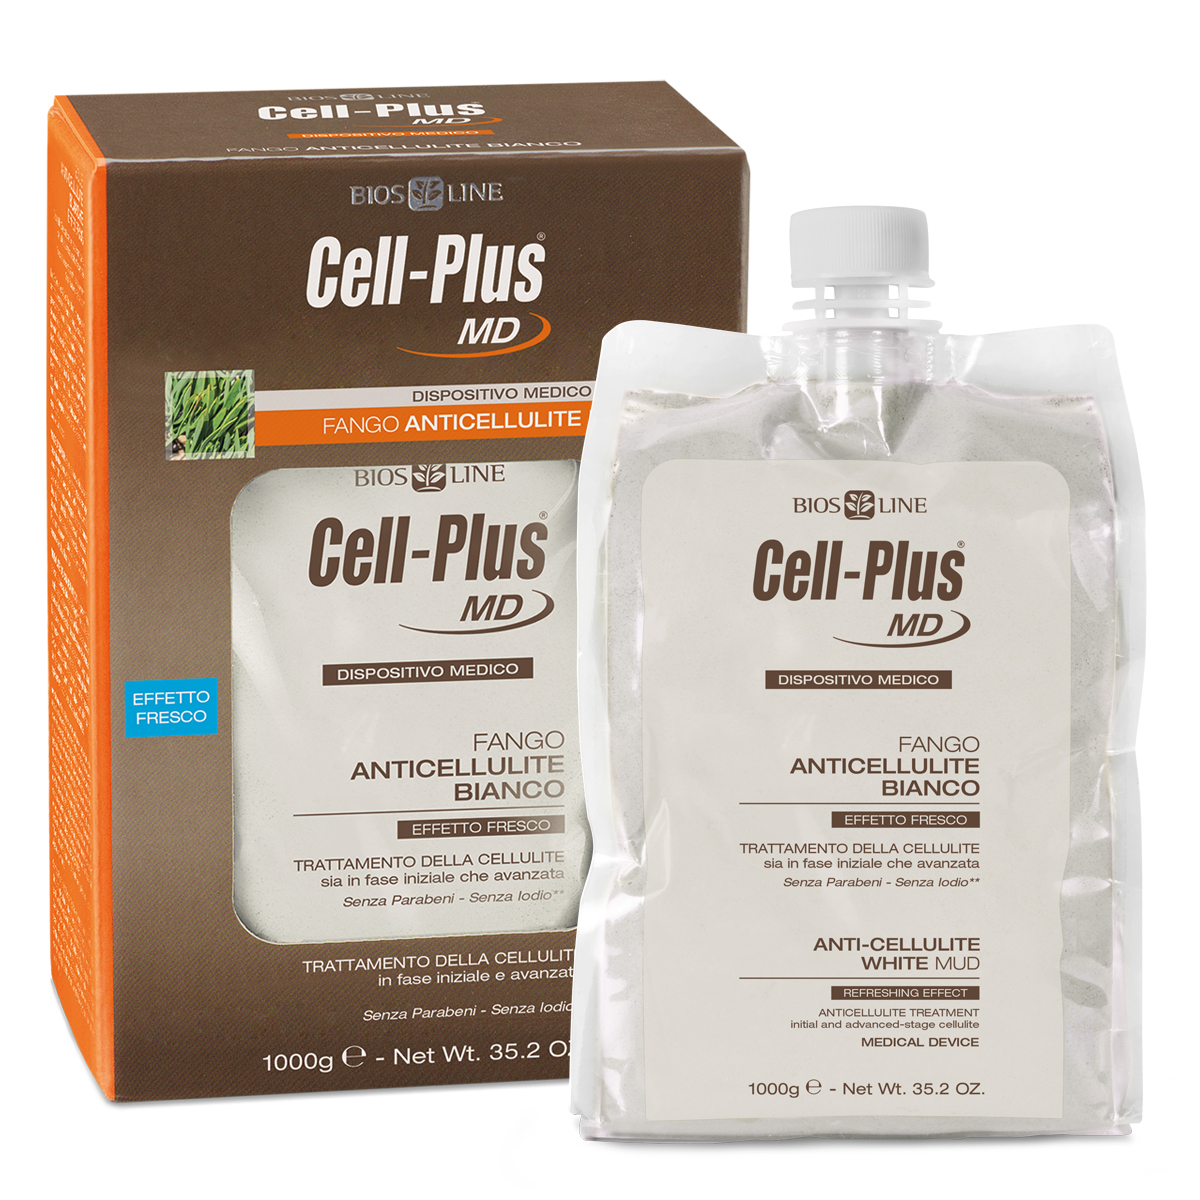 Cell-Plus MD Anticellulite White Mud